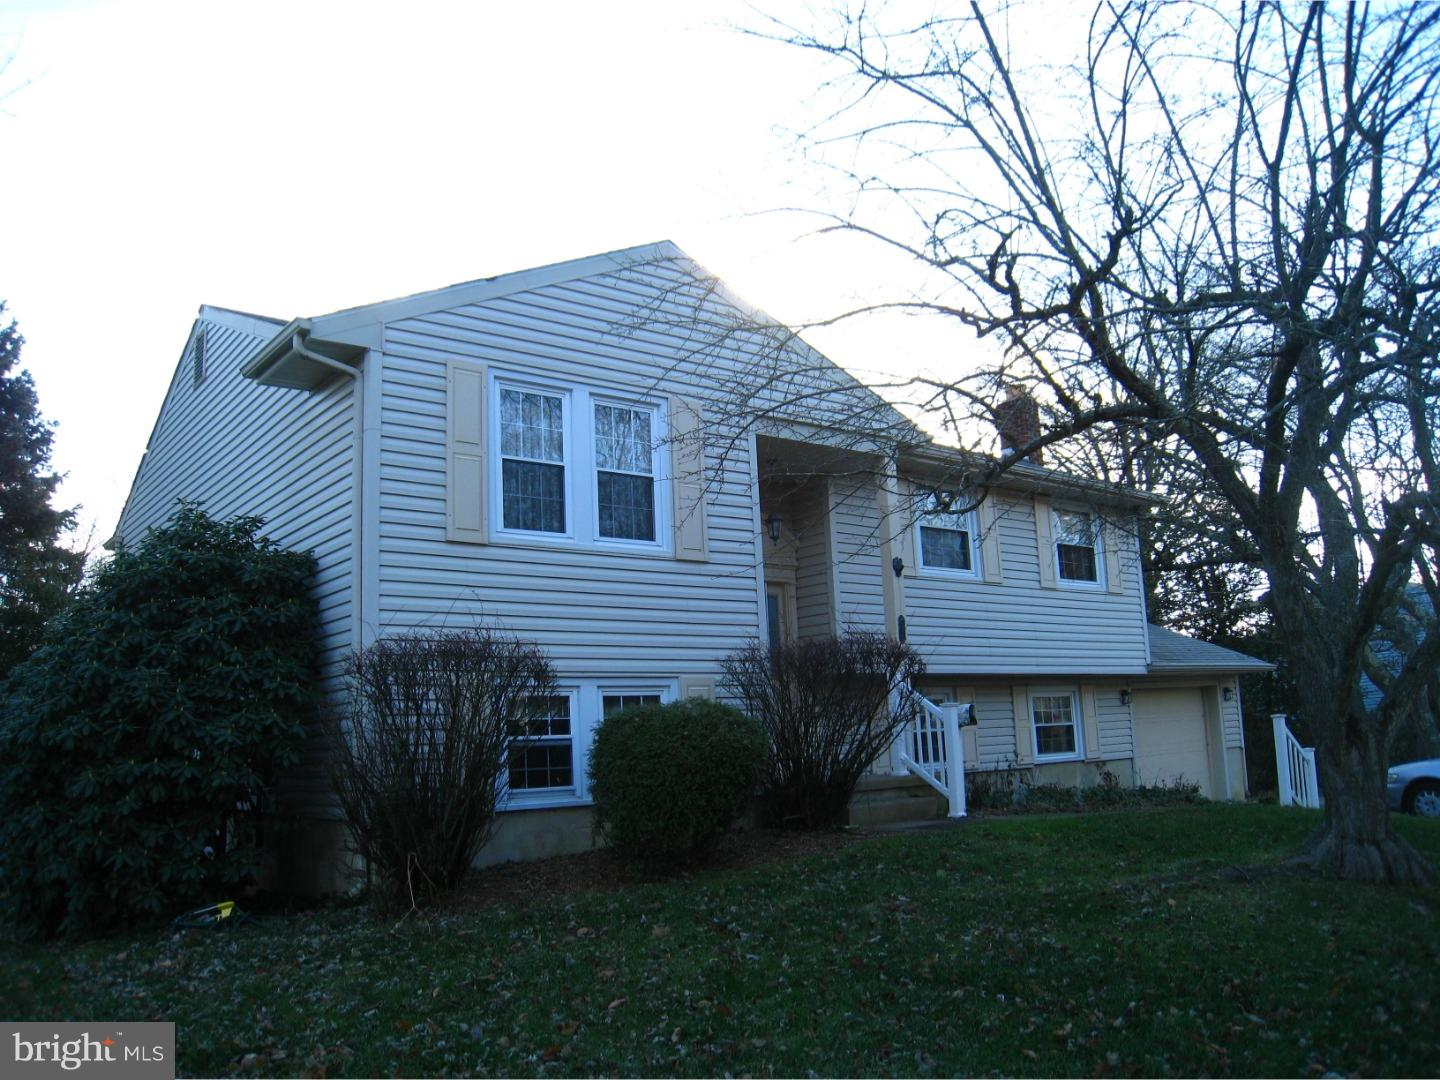 Single Family Home for Sale at 27 SARATOGA Road Stratford, New Jersey 08084 United States